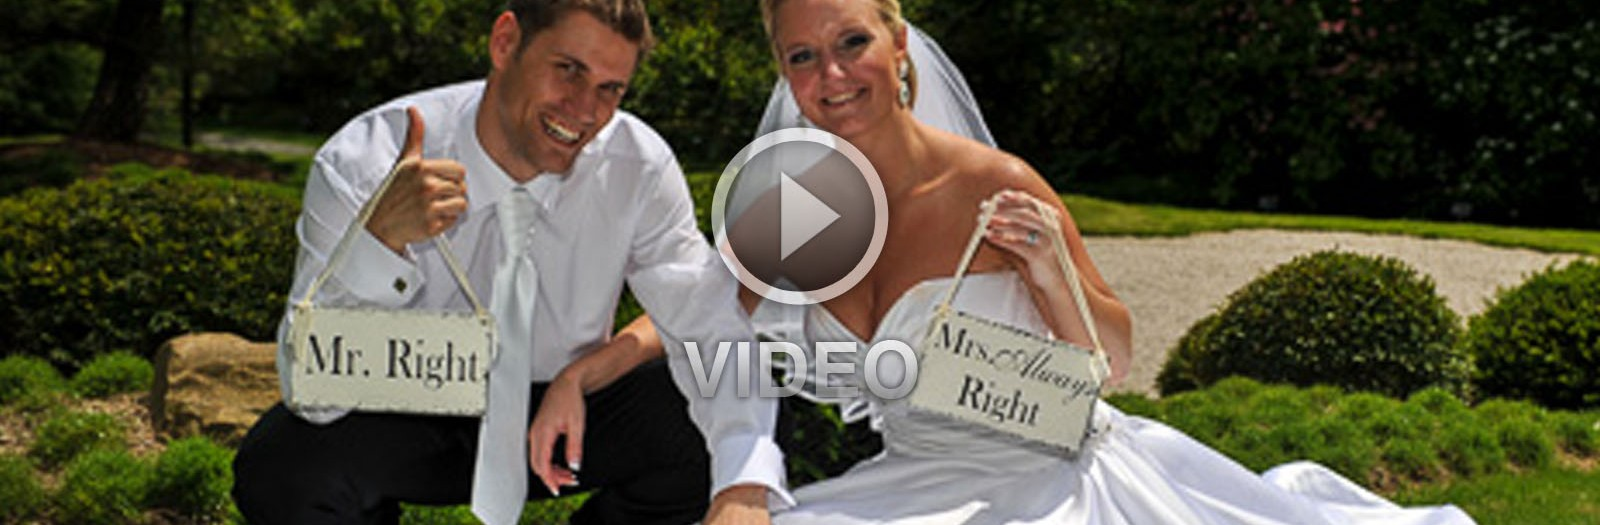 Gabča + Jakub - 13.6.2013 - video